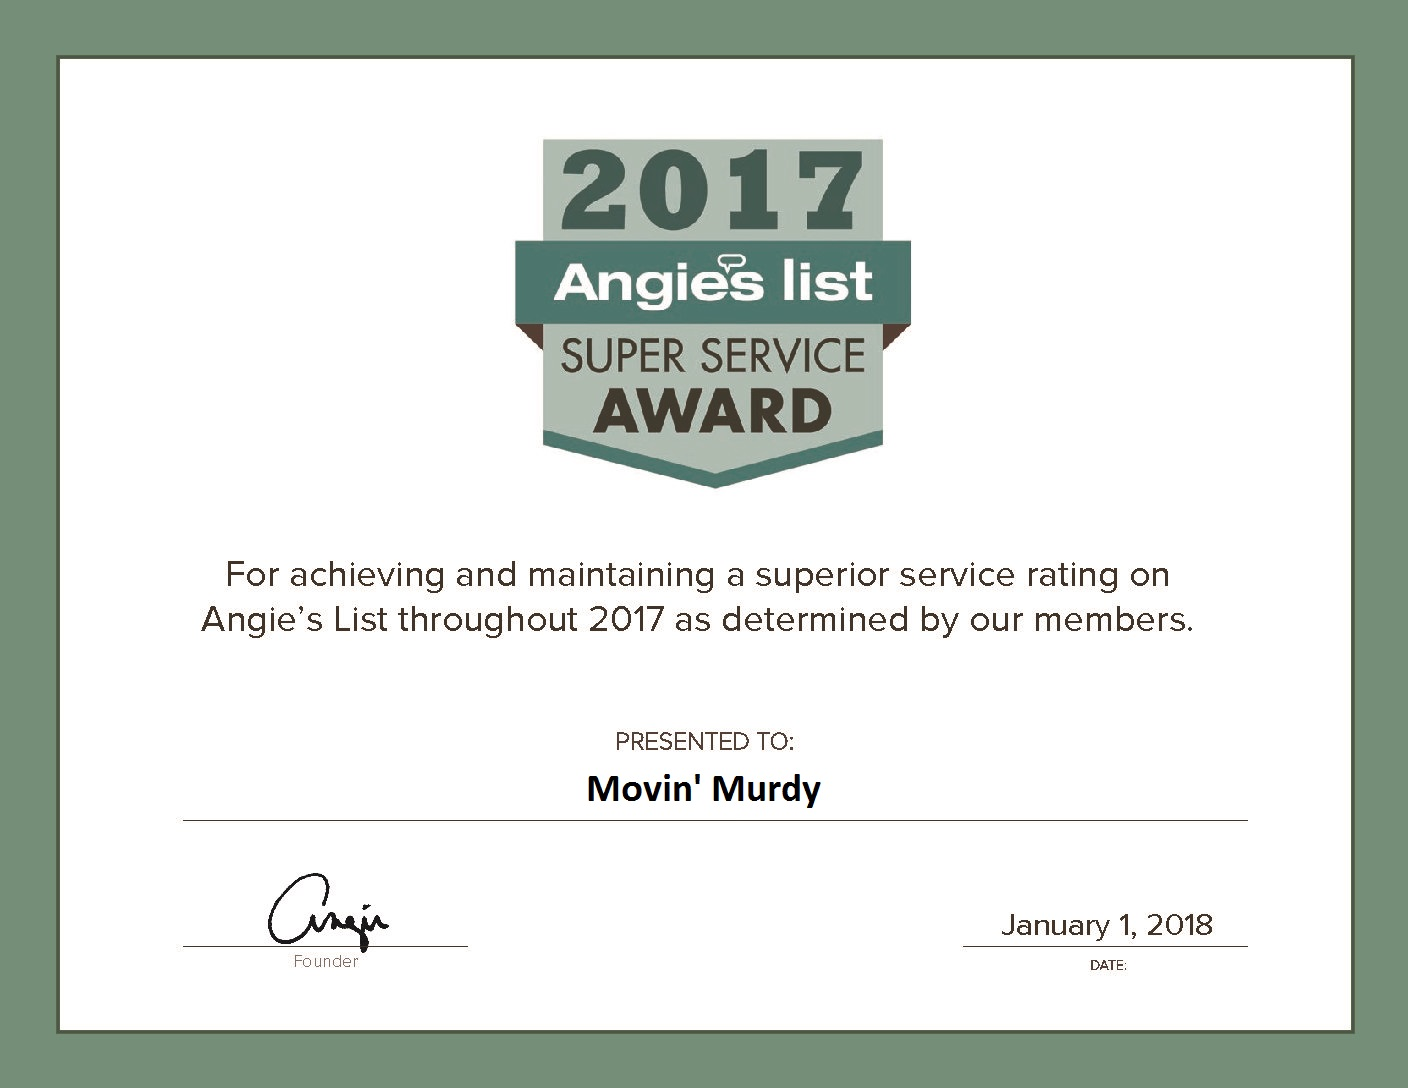 Movin' Murdy is proud to announce that their exceptional relocation Pittsburgh services have achieved the SSA award from Angie's List.